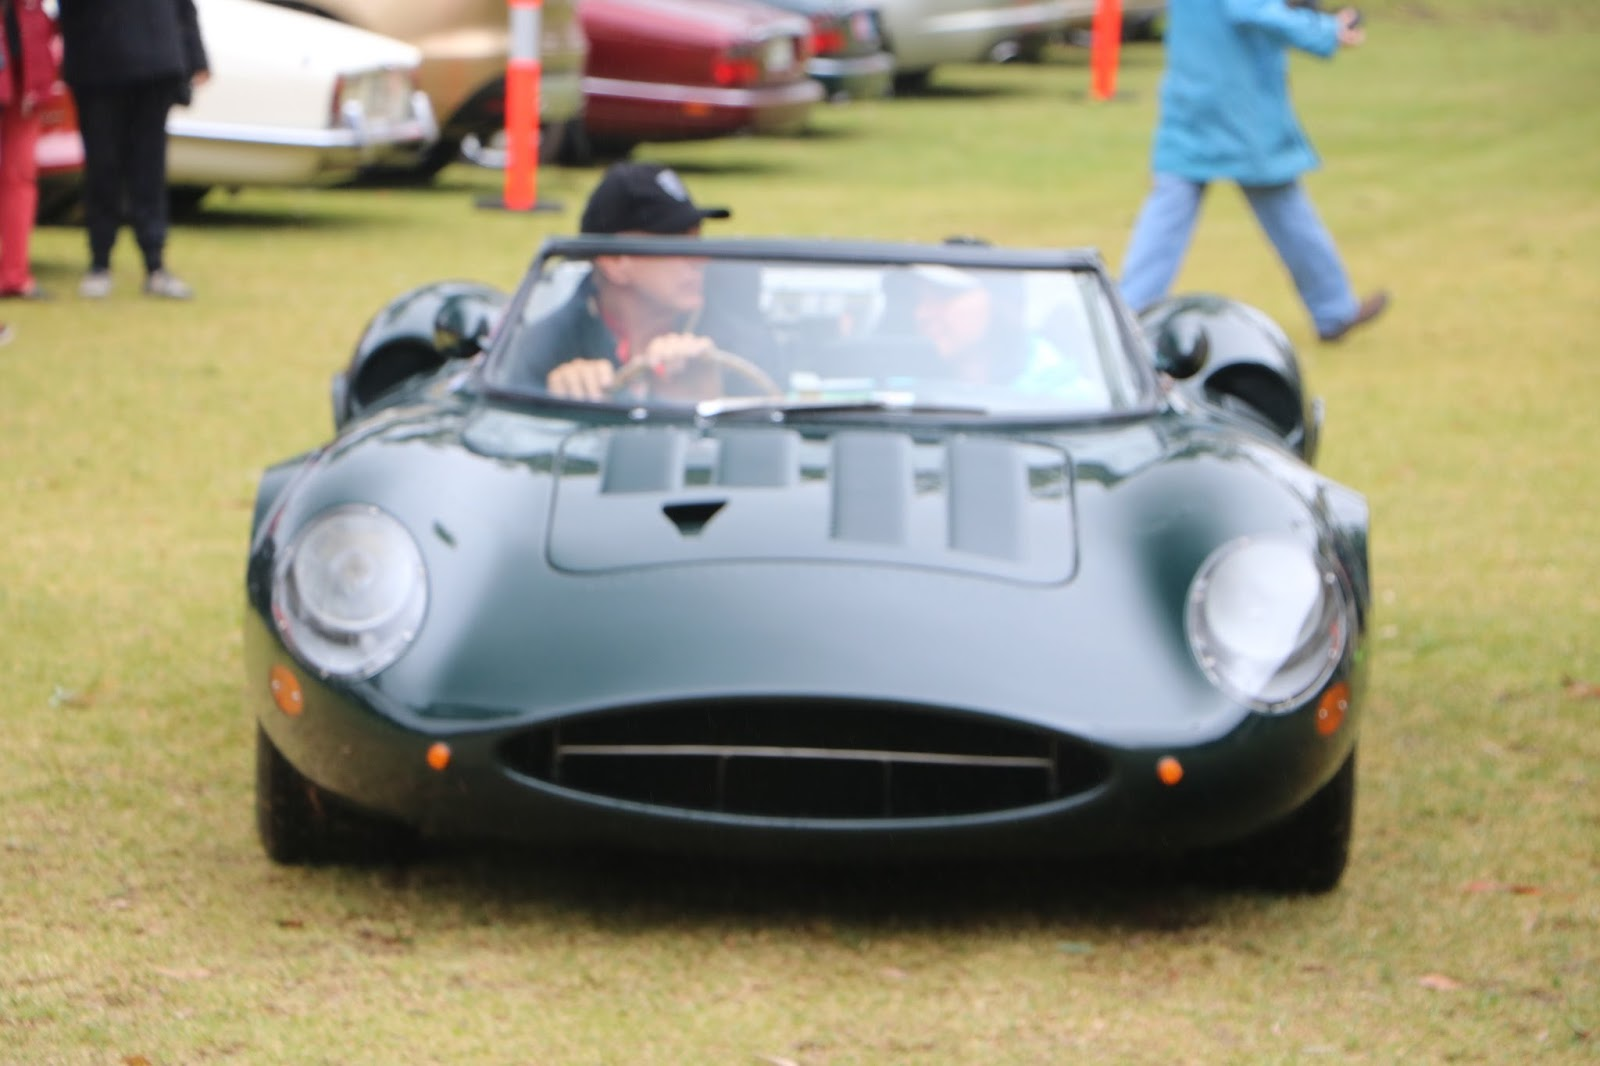 Jaguar_National_Rally_2018-04-14_0273 - XJ13 Replica.JPG